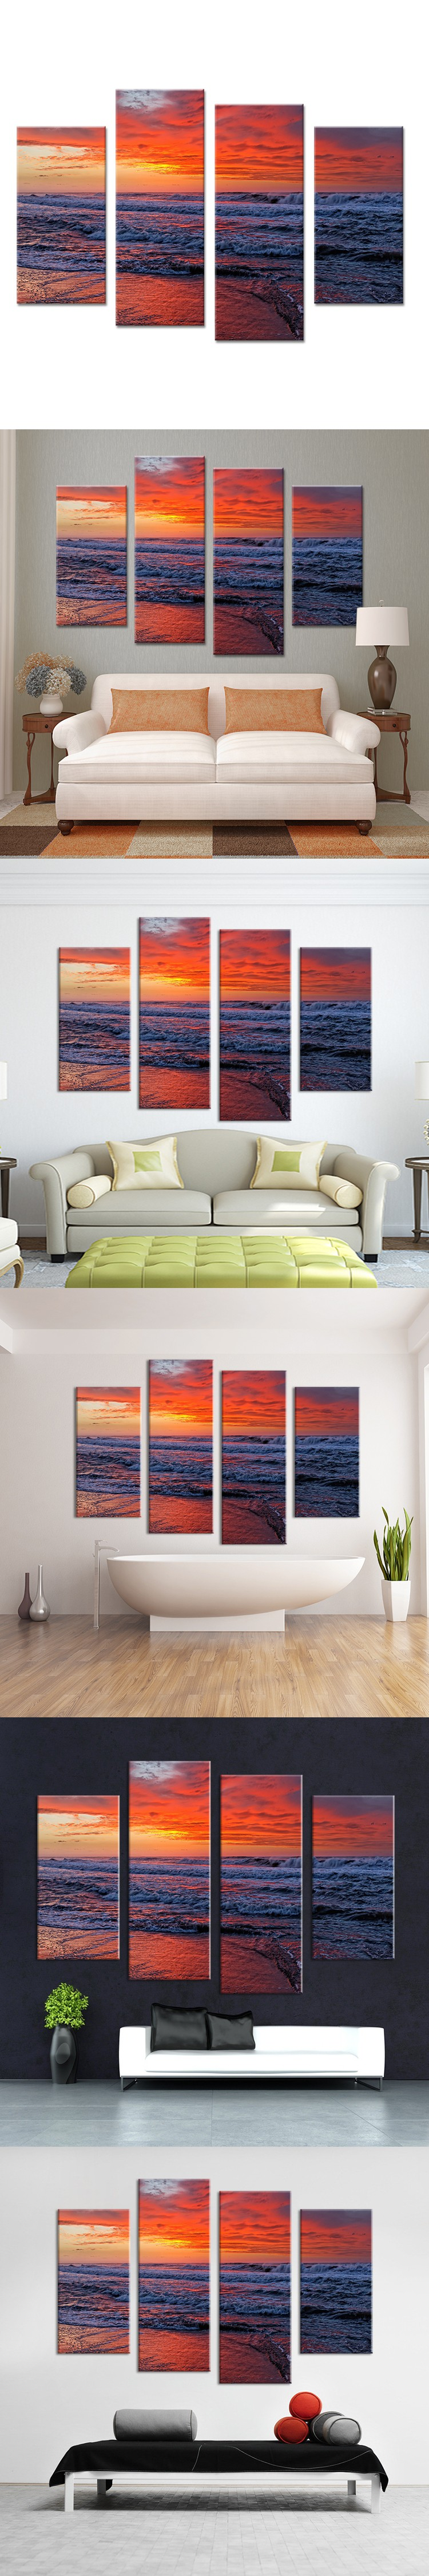 Sundown in the ocean beach wall painting print on canvas for home sundown in the ocean beach wall painting print on canvas for home decor ideas paints on wall pictures art no framed amipublicfo Gallery